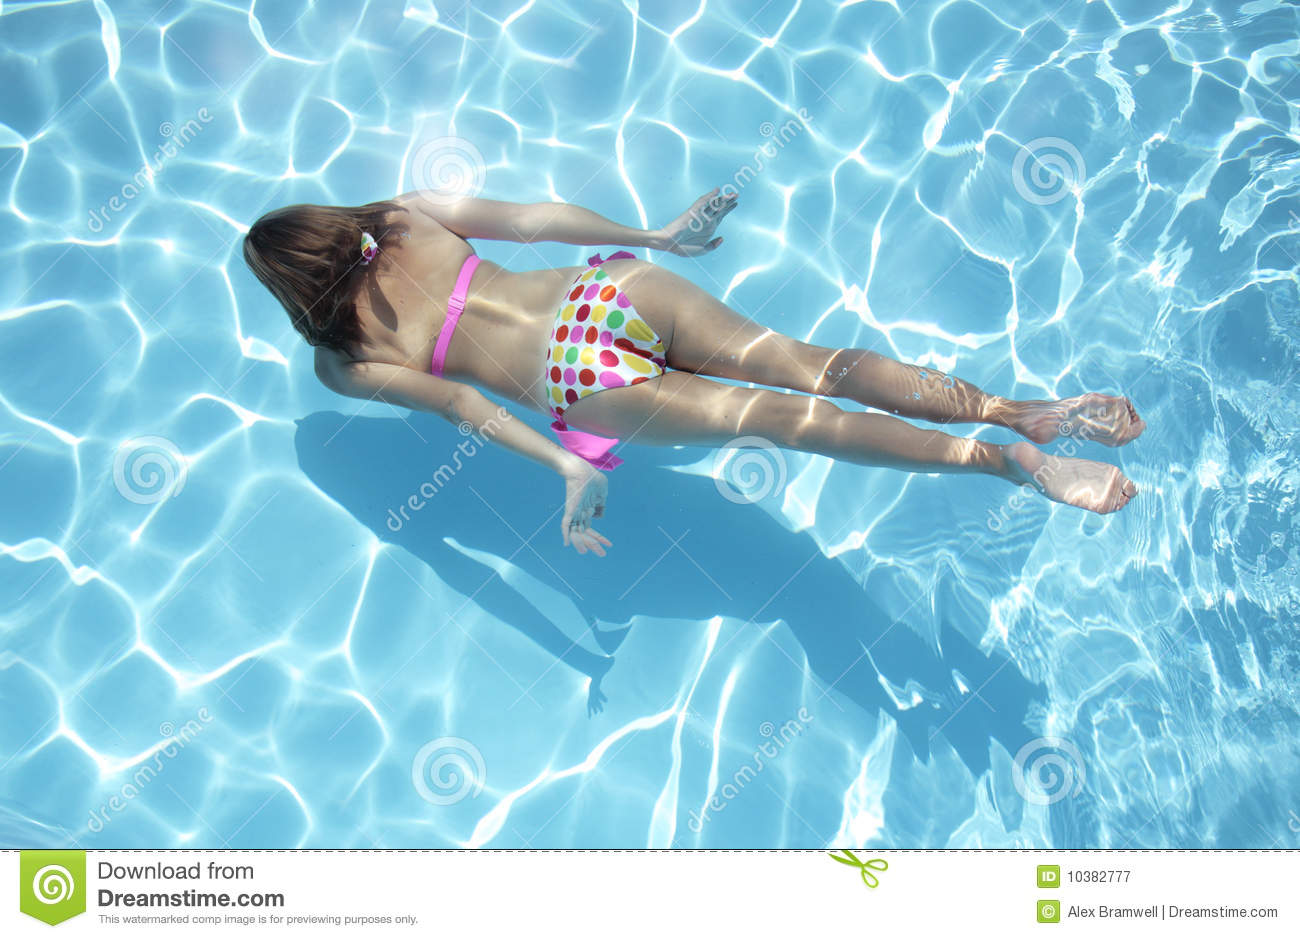 Underwater Swimmer Royalty Free Stock Photography - Image: 10382777